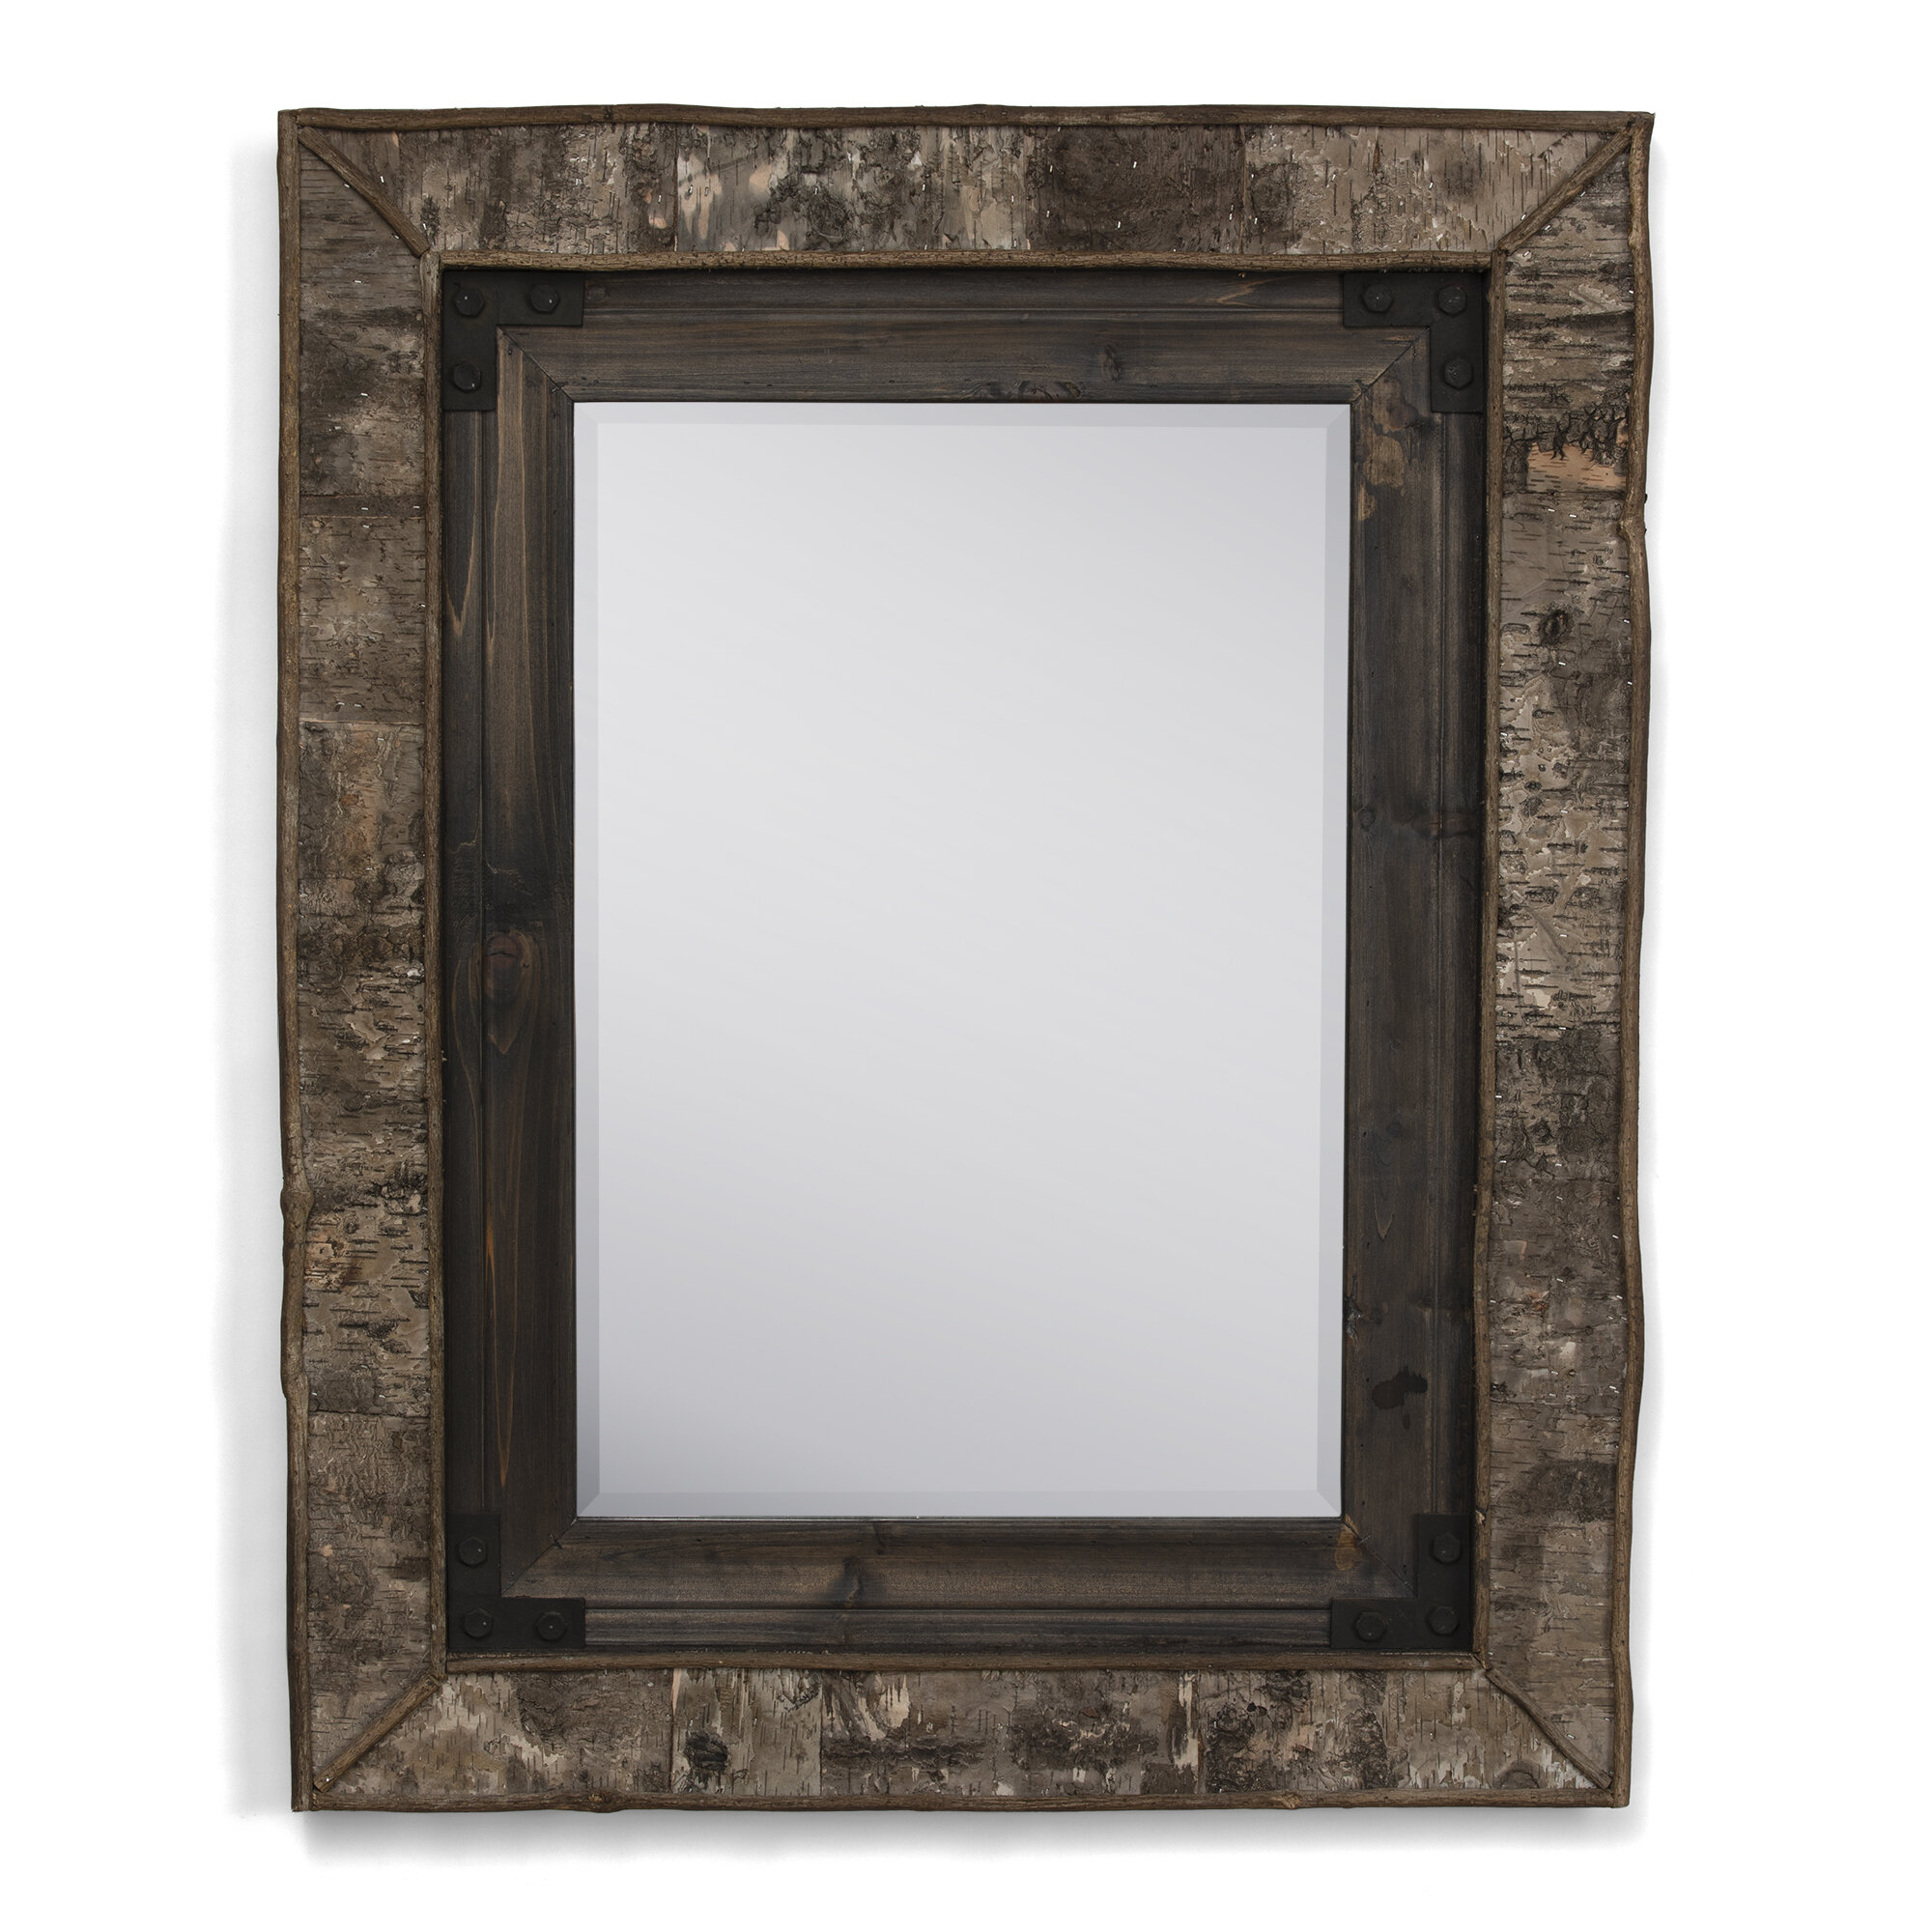 Details About Loon Peak Rectangular Accent Wall Mirror With Rectangle Accent Wall Mirrors (View 15 of 20)